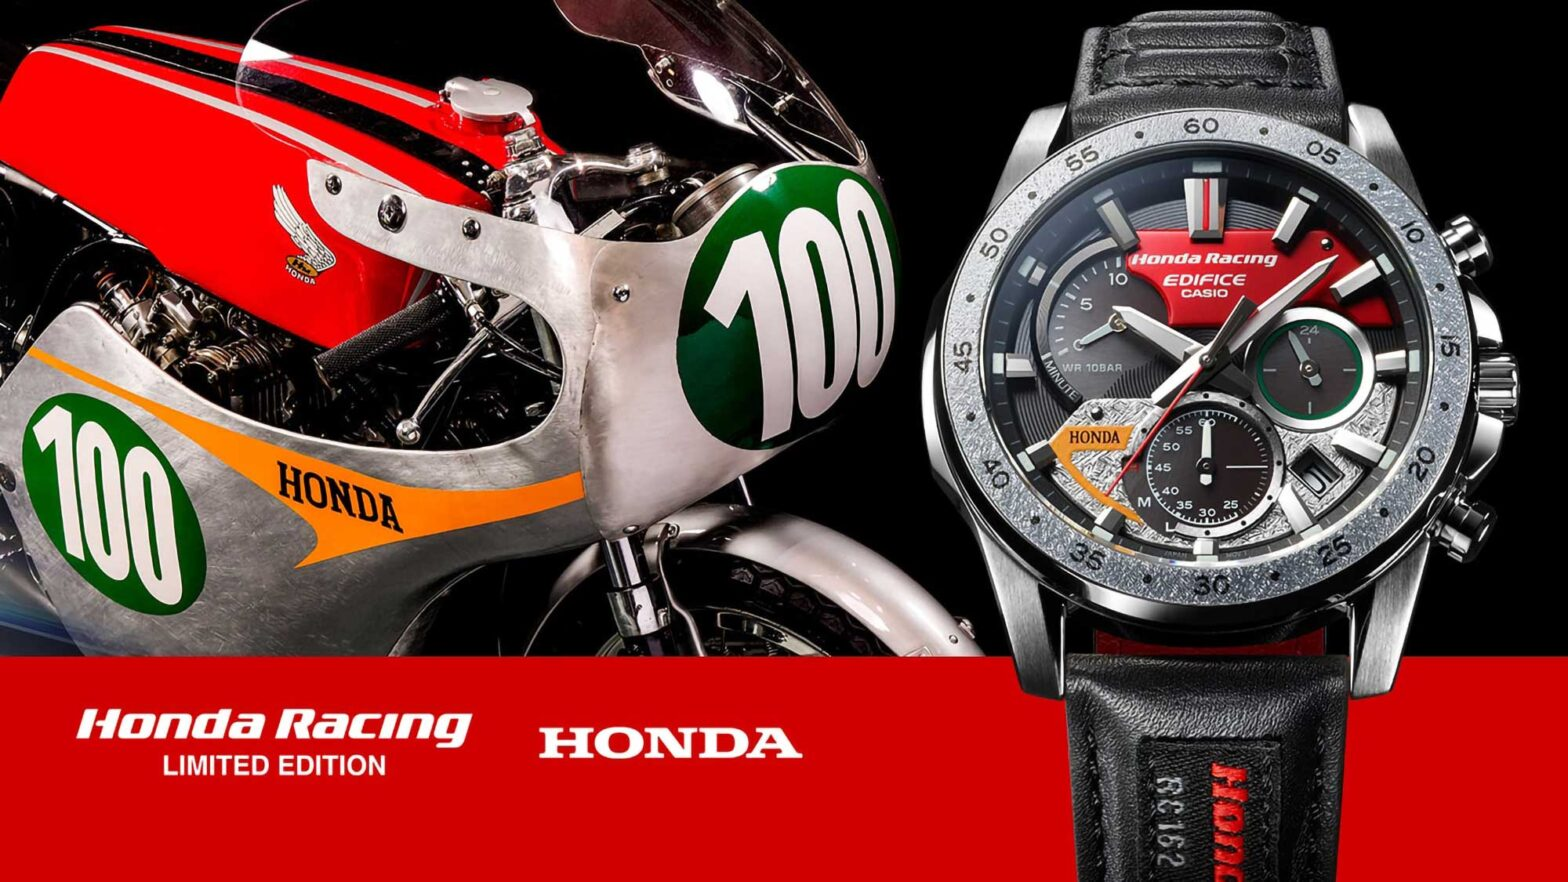 Casio x Honda Racing EQS-930HR Wrist Watch